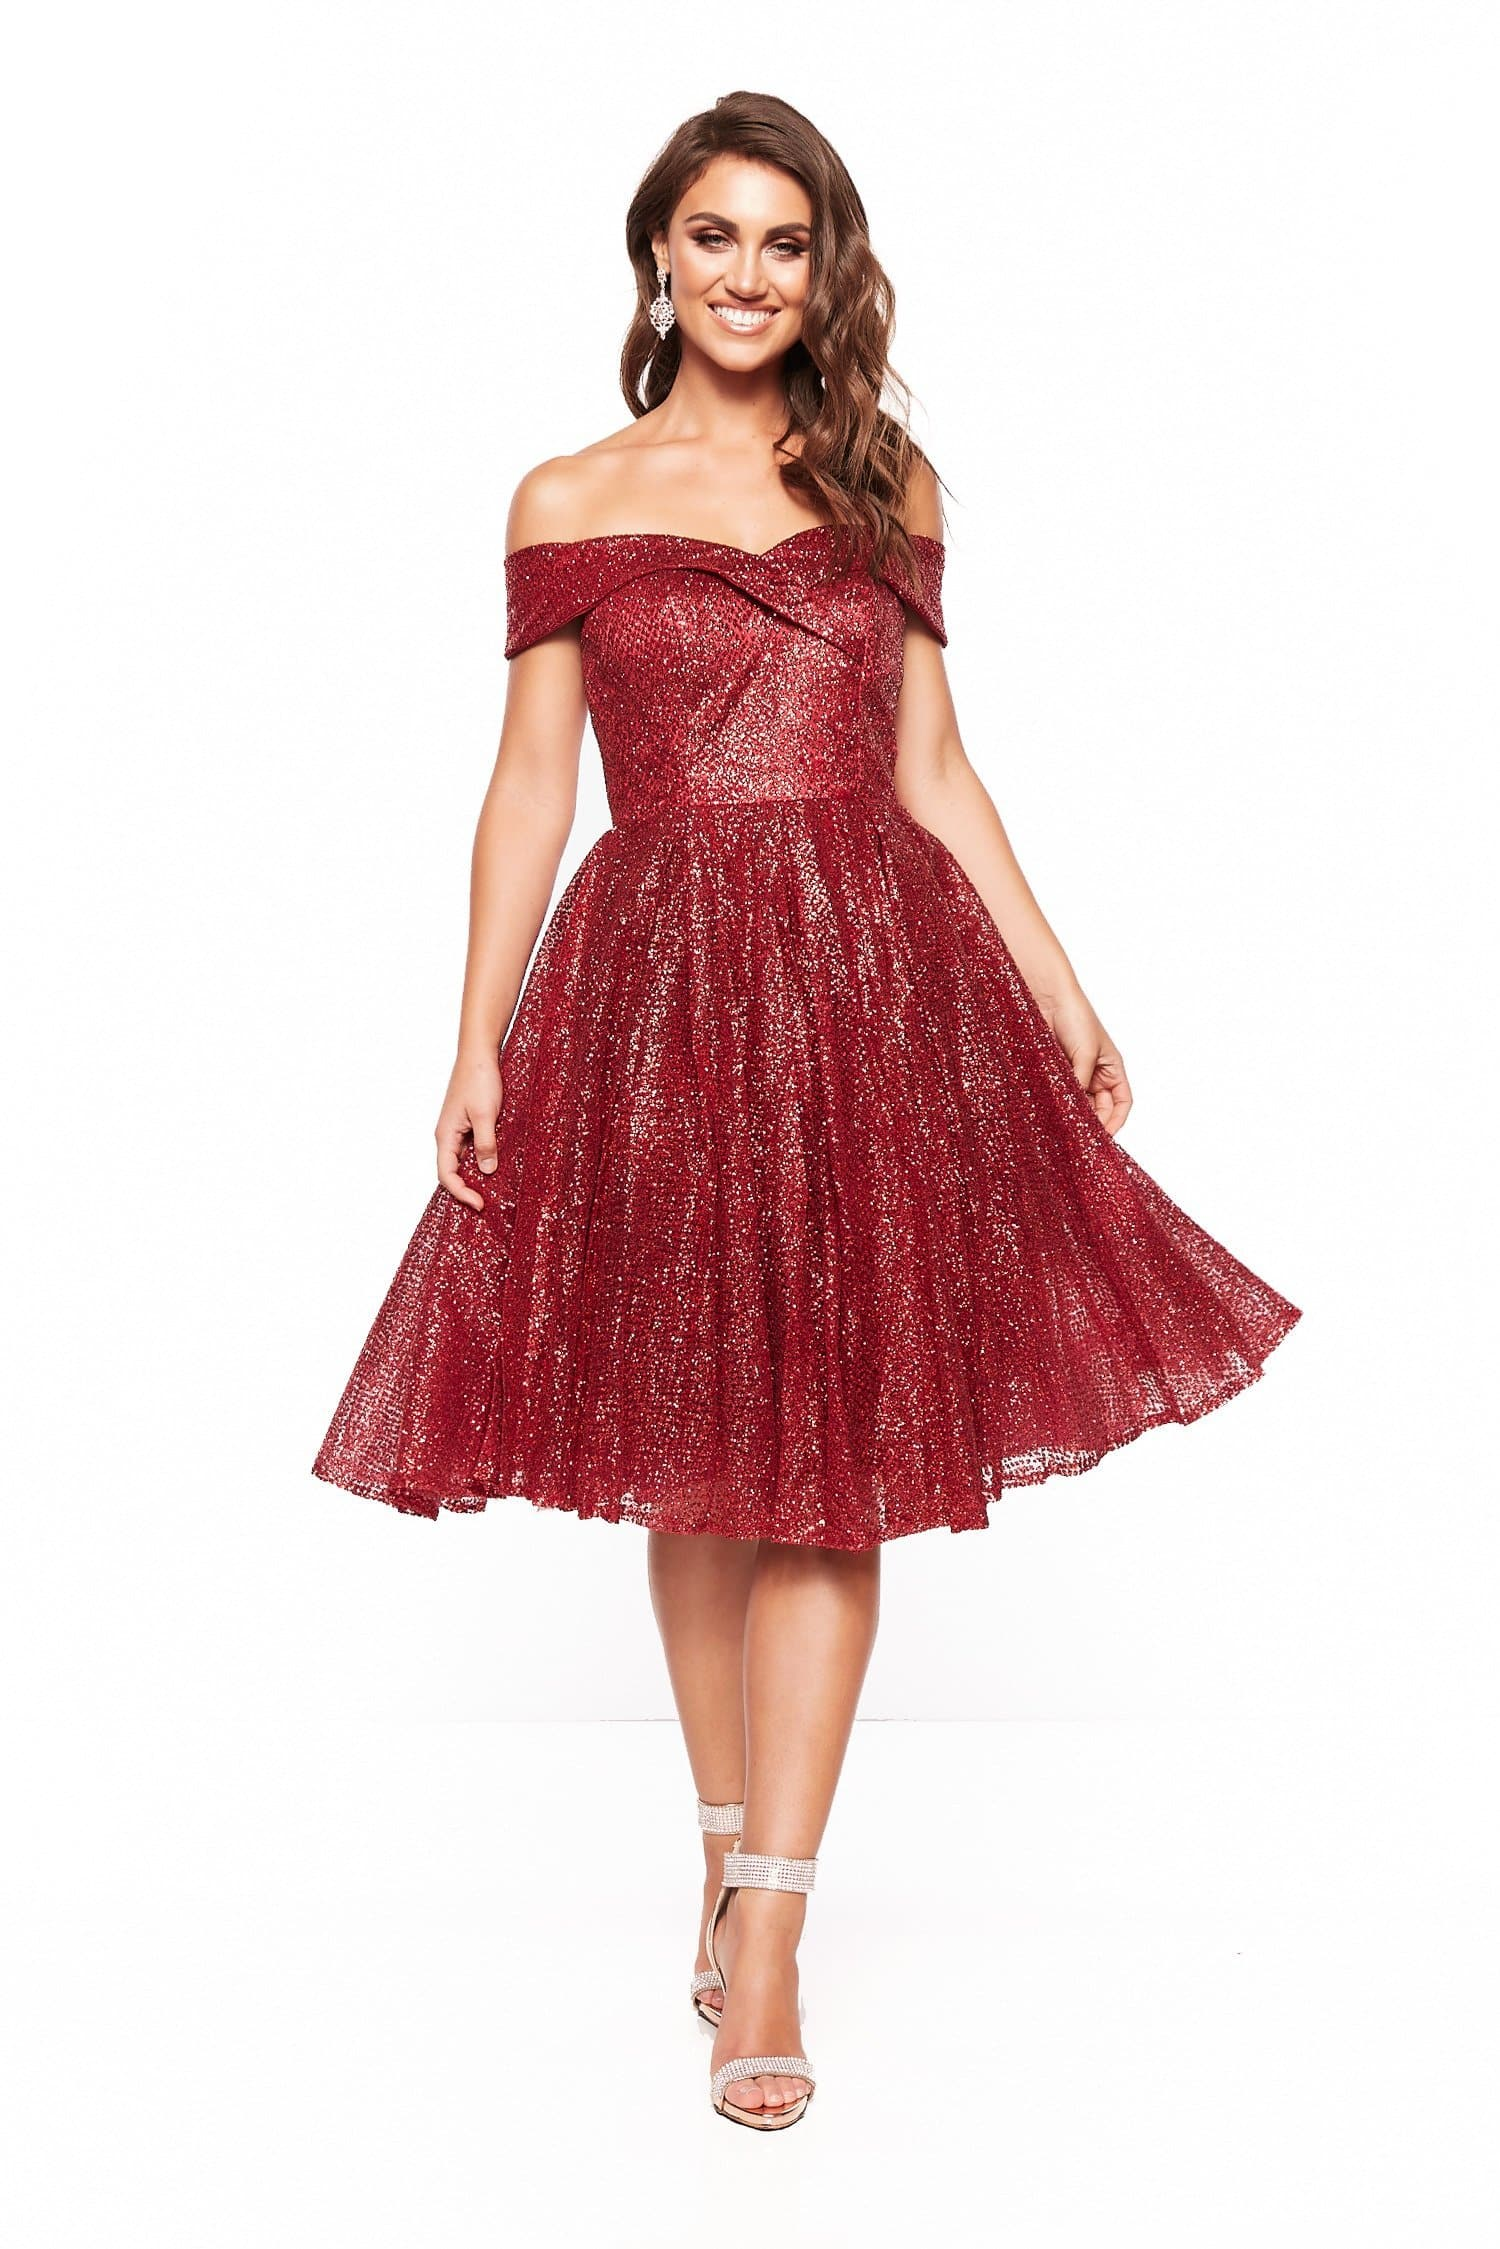 A&N Nyla Glitter Cocktail Off Shoulder Midi Dress - Burgundy